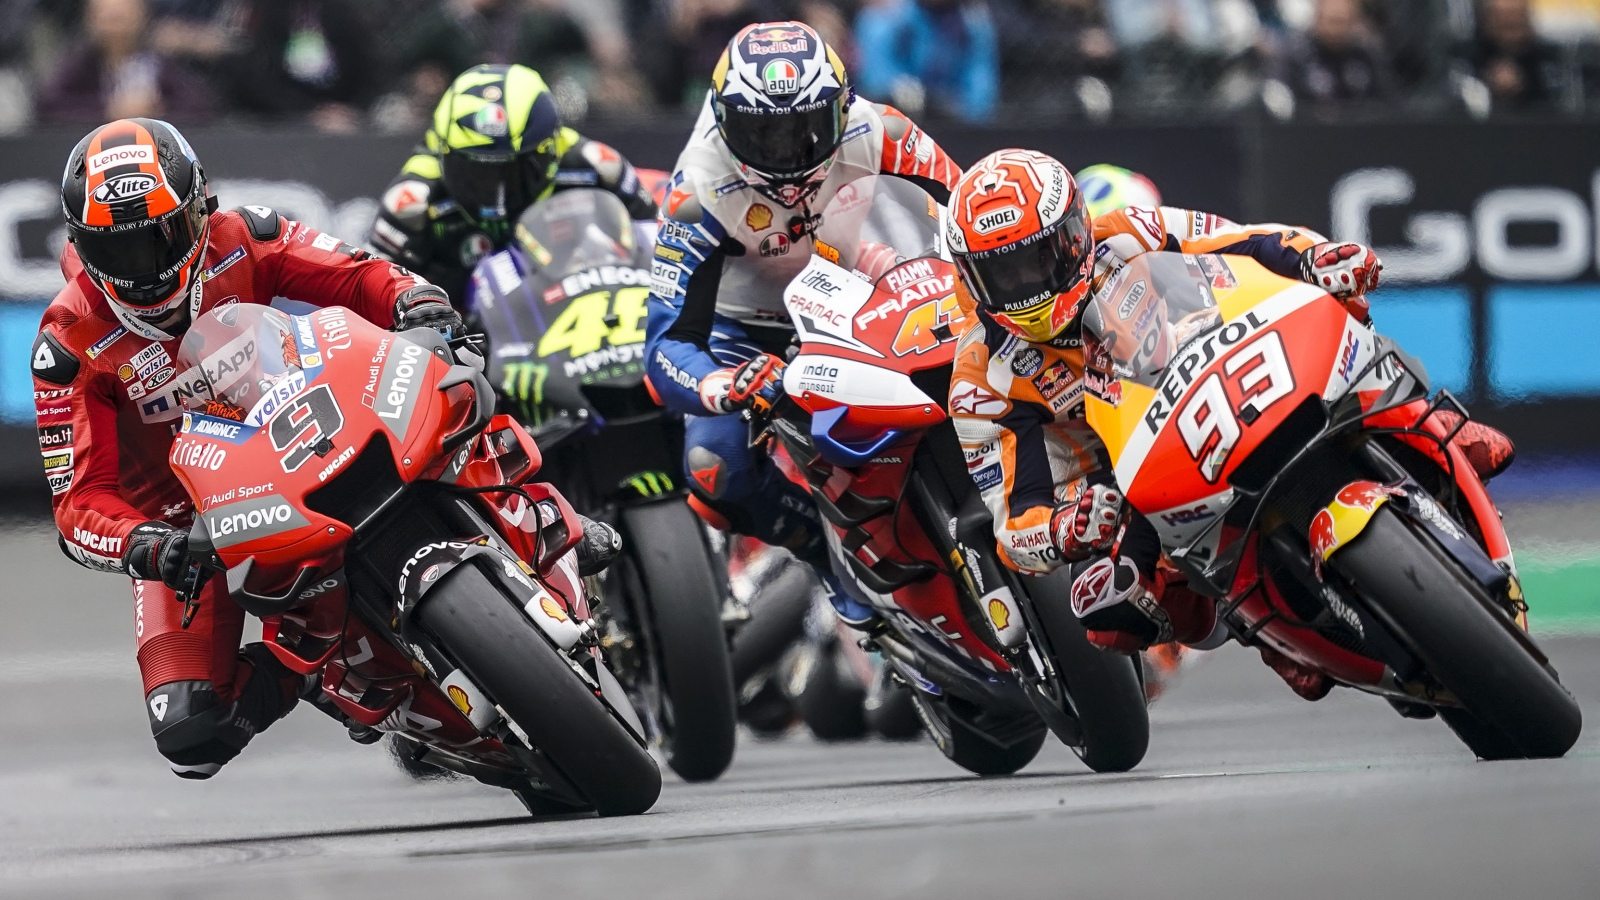 Las cinco constantes y media de MotoGP 2019